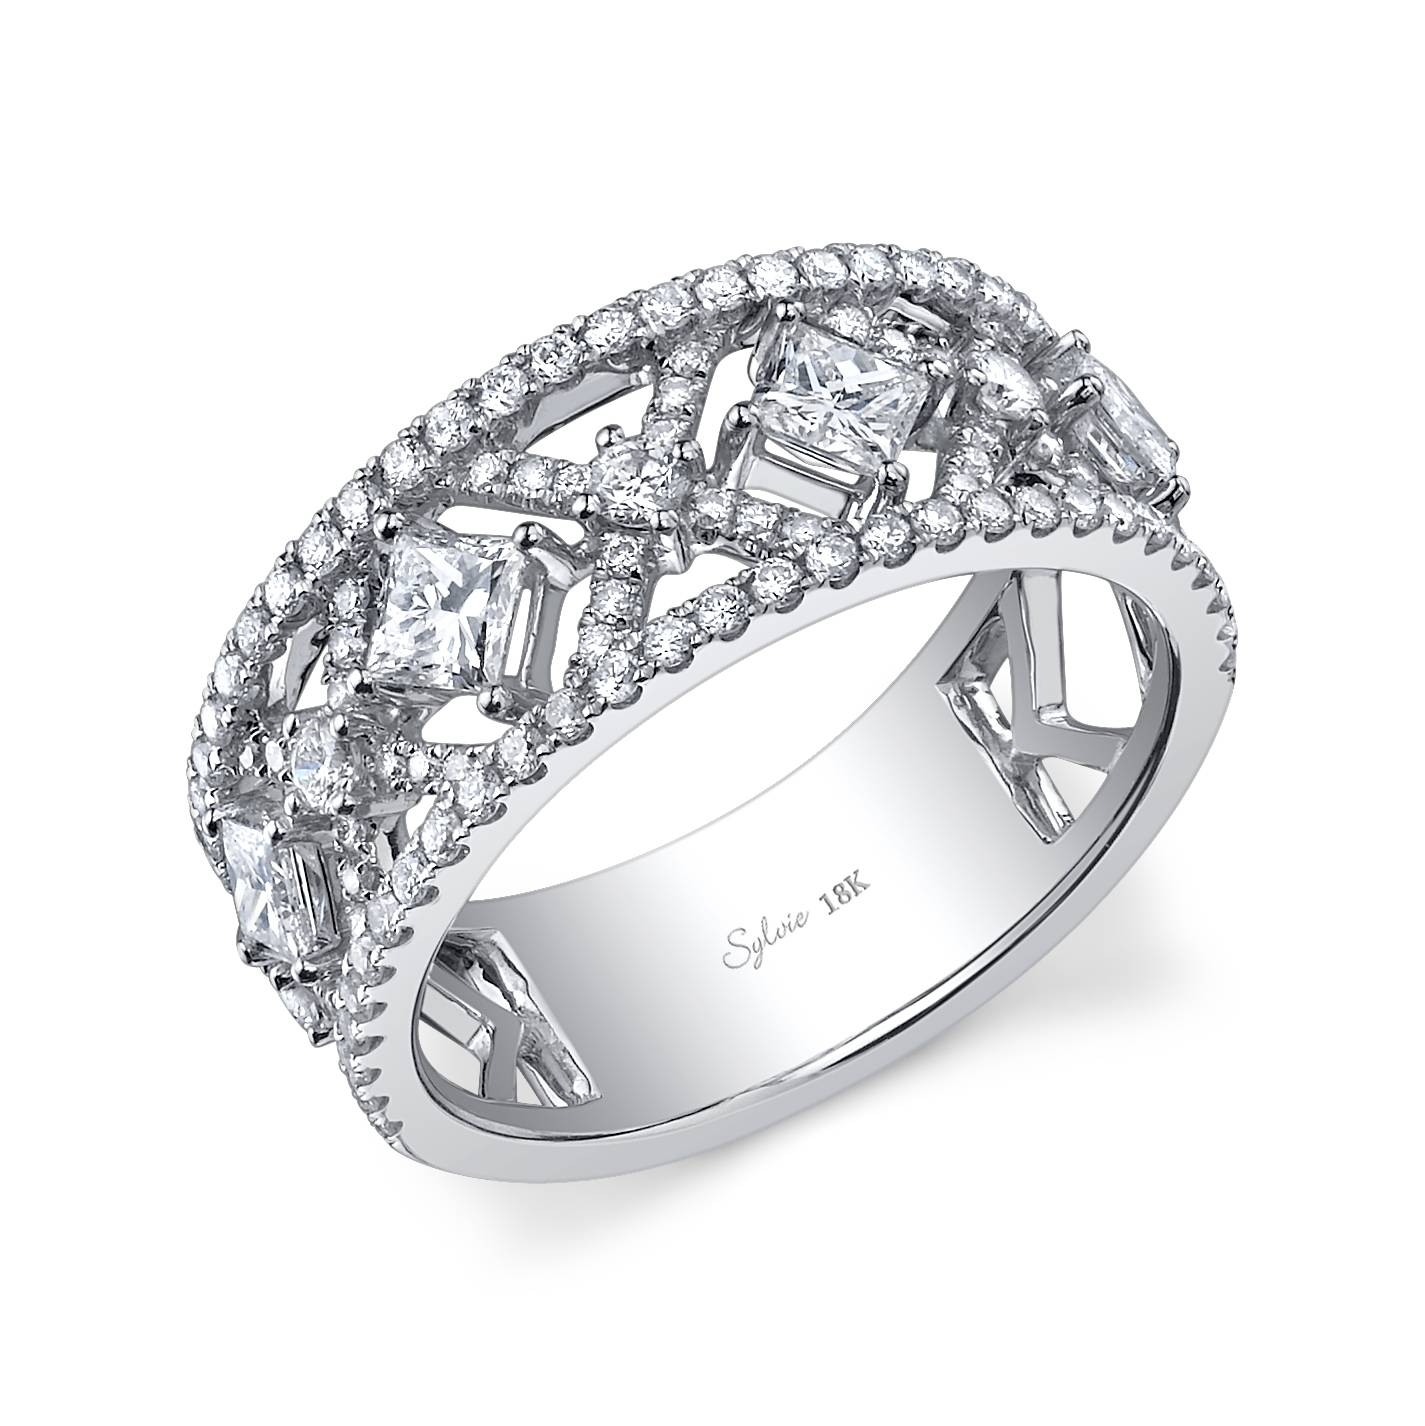 Wedding Rings : Engagement Ring And Wedding Band Rules Wedding In Best And Newest Female Wedding Bands With Diamonds (View 12 of 15)